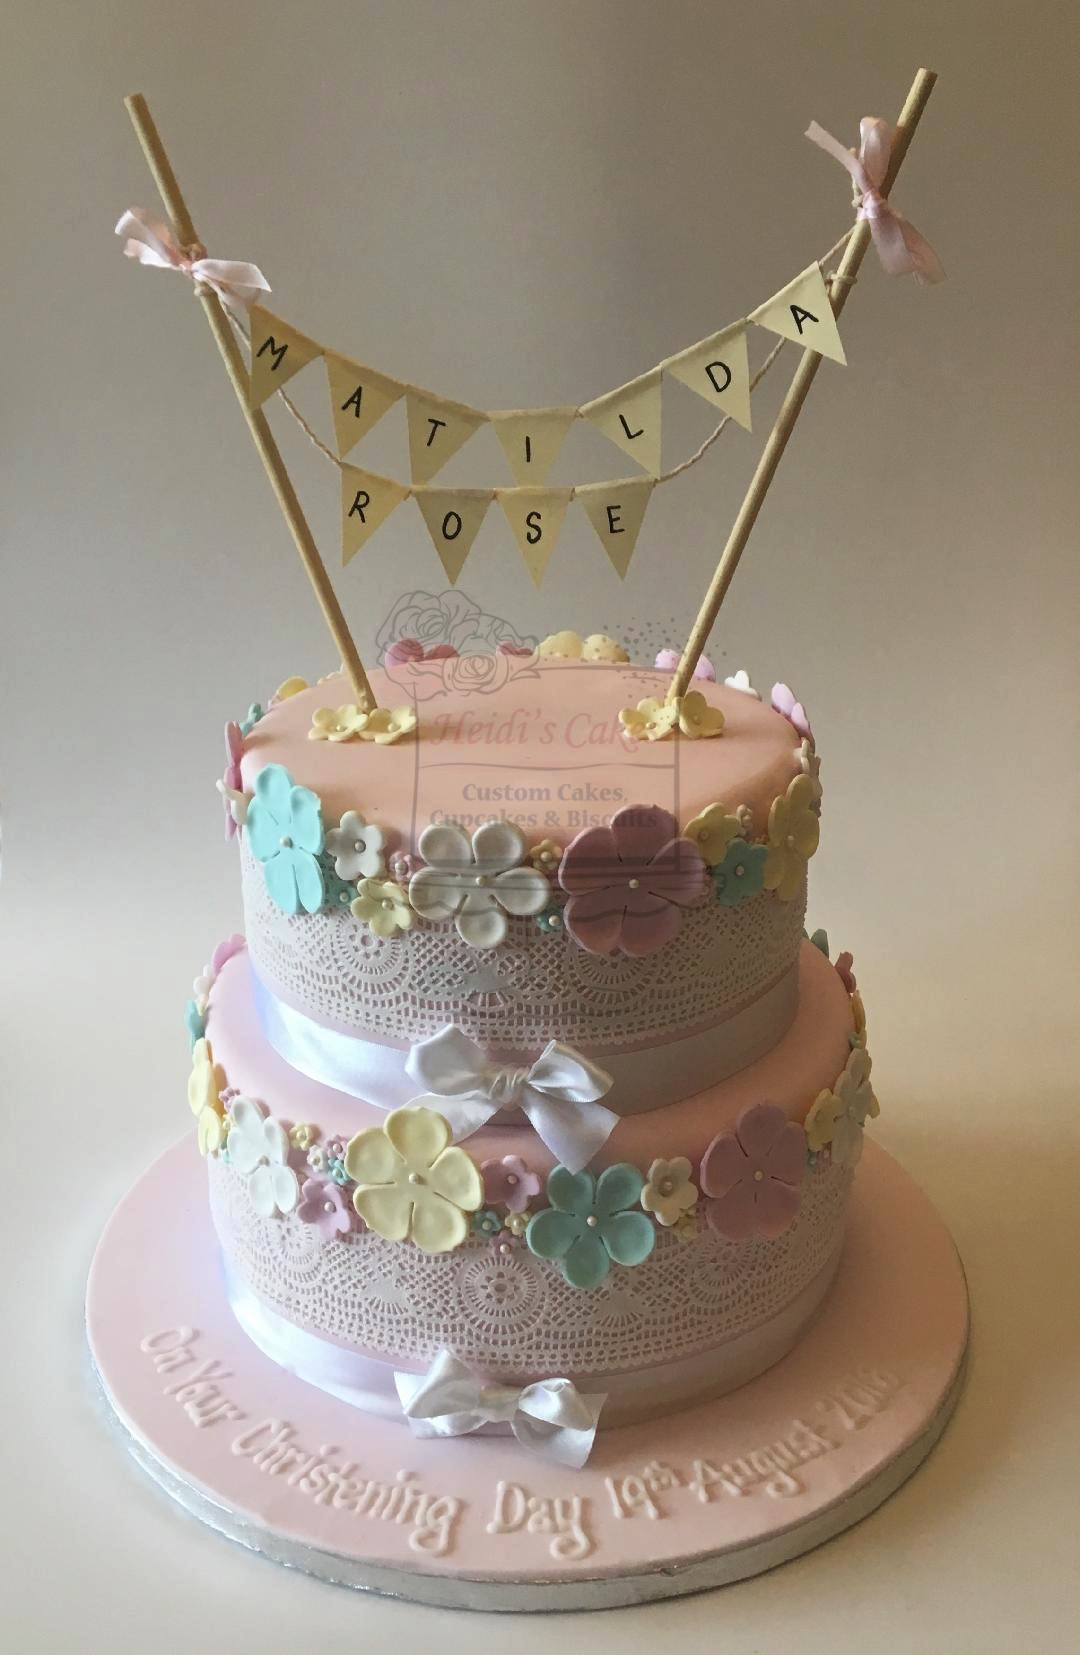 Flowers, Lace & Bunting 2 Tier